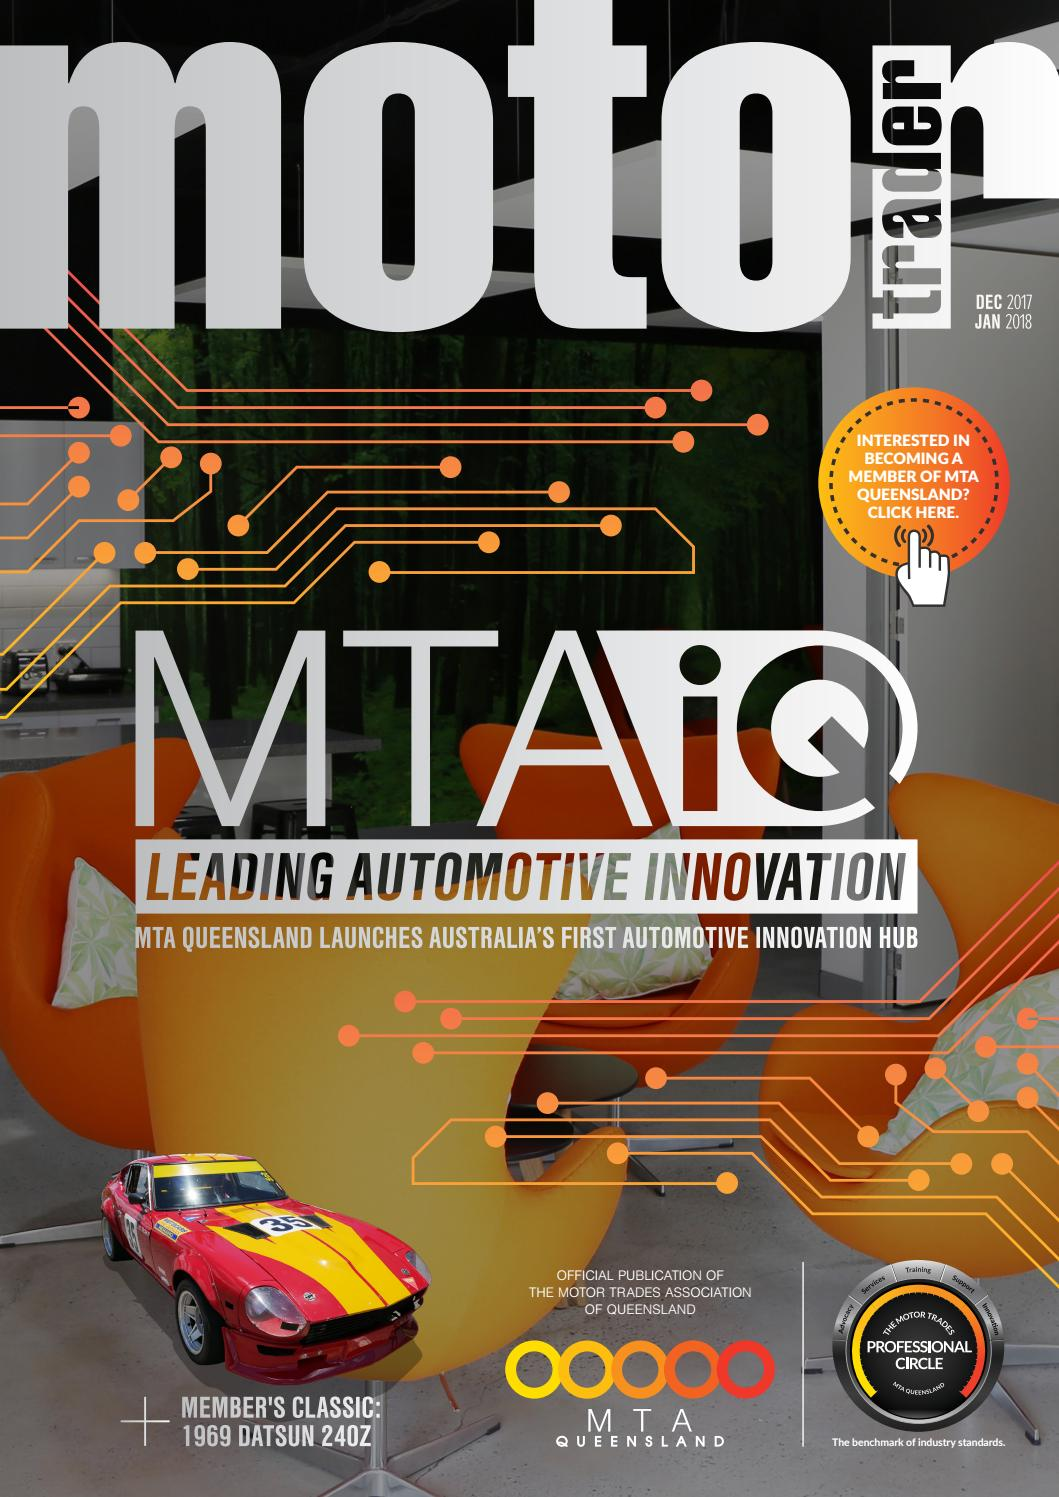 Motor trader e-magazine Dec 2017 to Jan 2018 by MTAQ IT - issuu